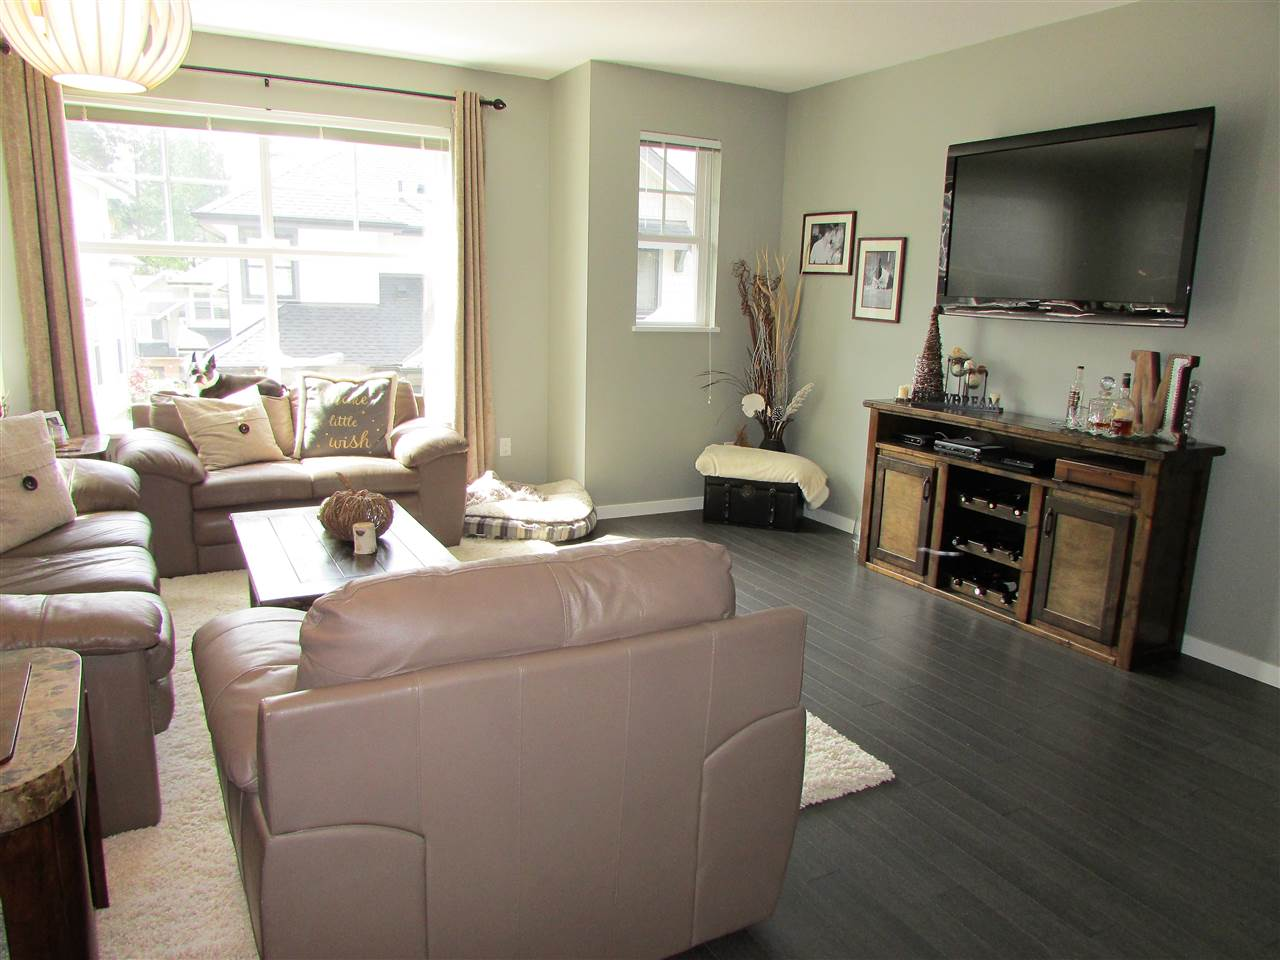 "Photo 9: 10 3470 HIGHLAND Drive in Coquitlam: Burke Mountain Townhouse for sale in ""BRIDLEWOOD"" : MLS® # R2164105"